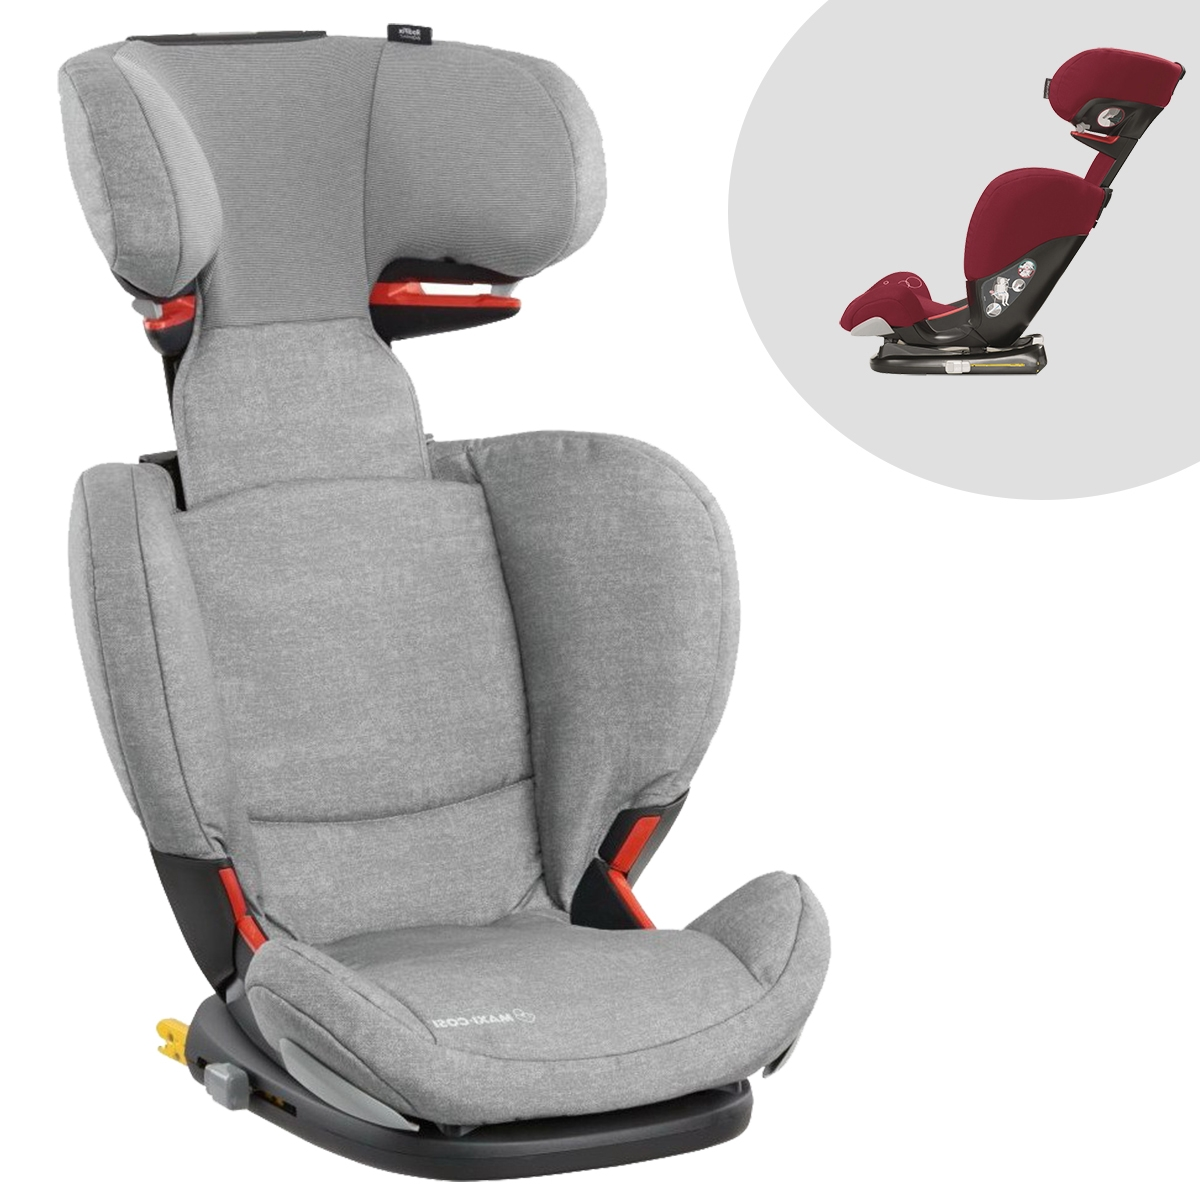 maxi cosi rodifix airprotect 15 36 kg isofix ocuk oto koltu u ayhan ocuk anne ve bebek. Black Bedroom Furniture Sets. Home Design Ideas